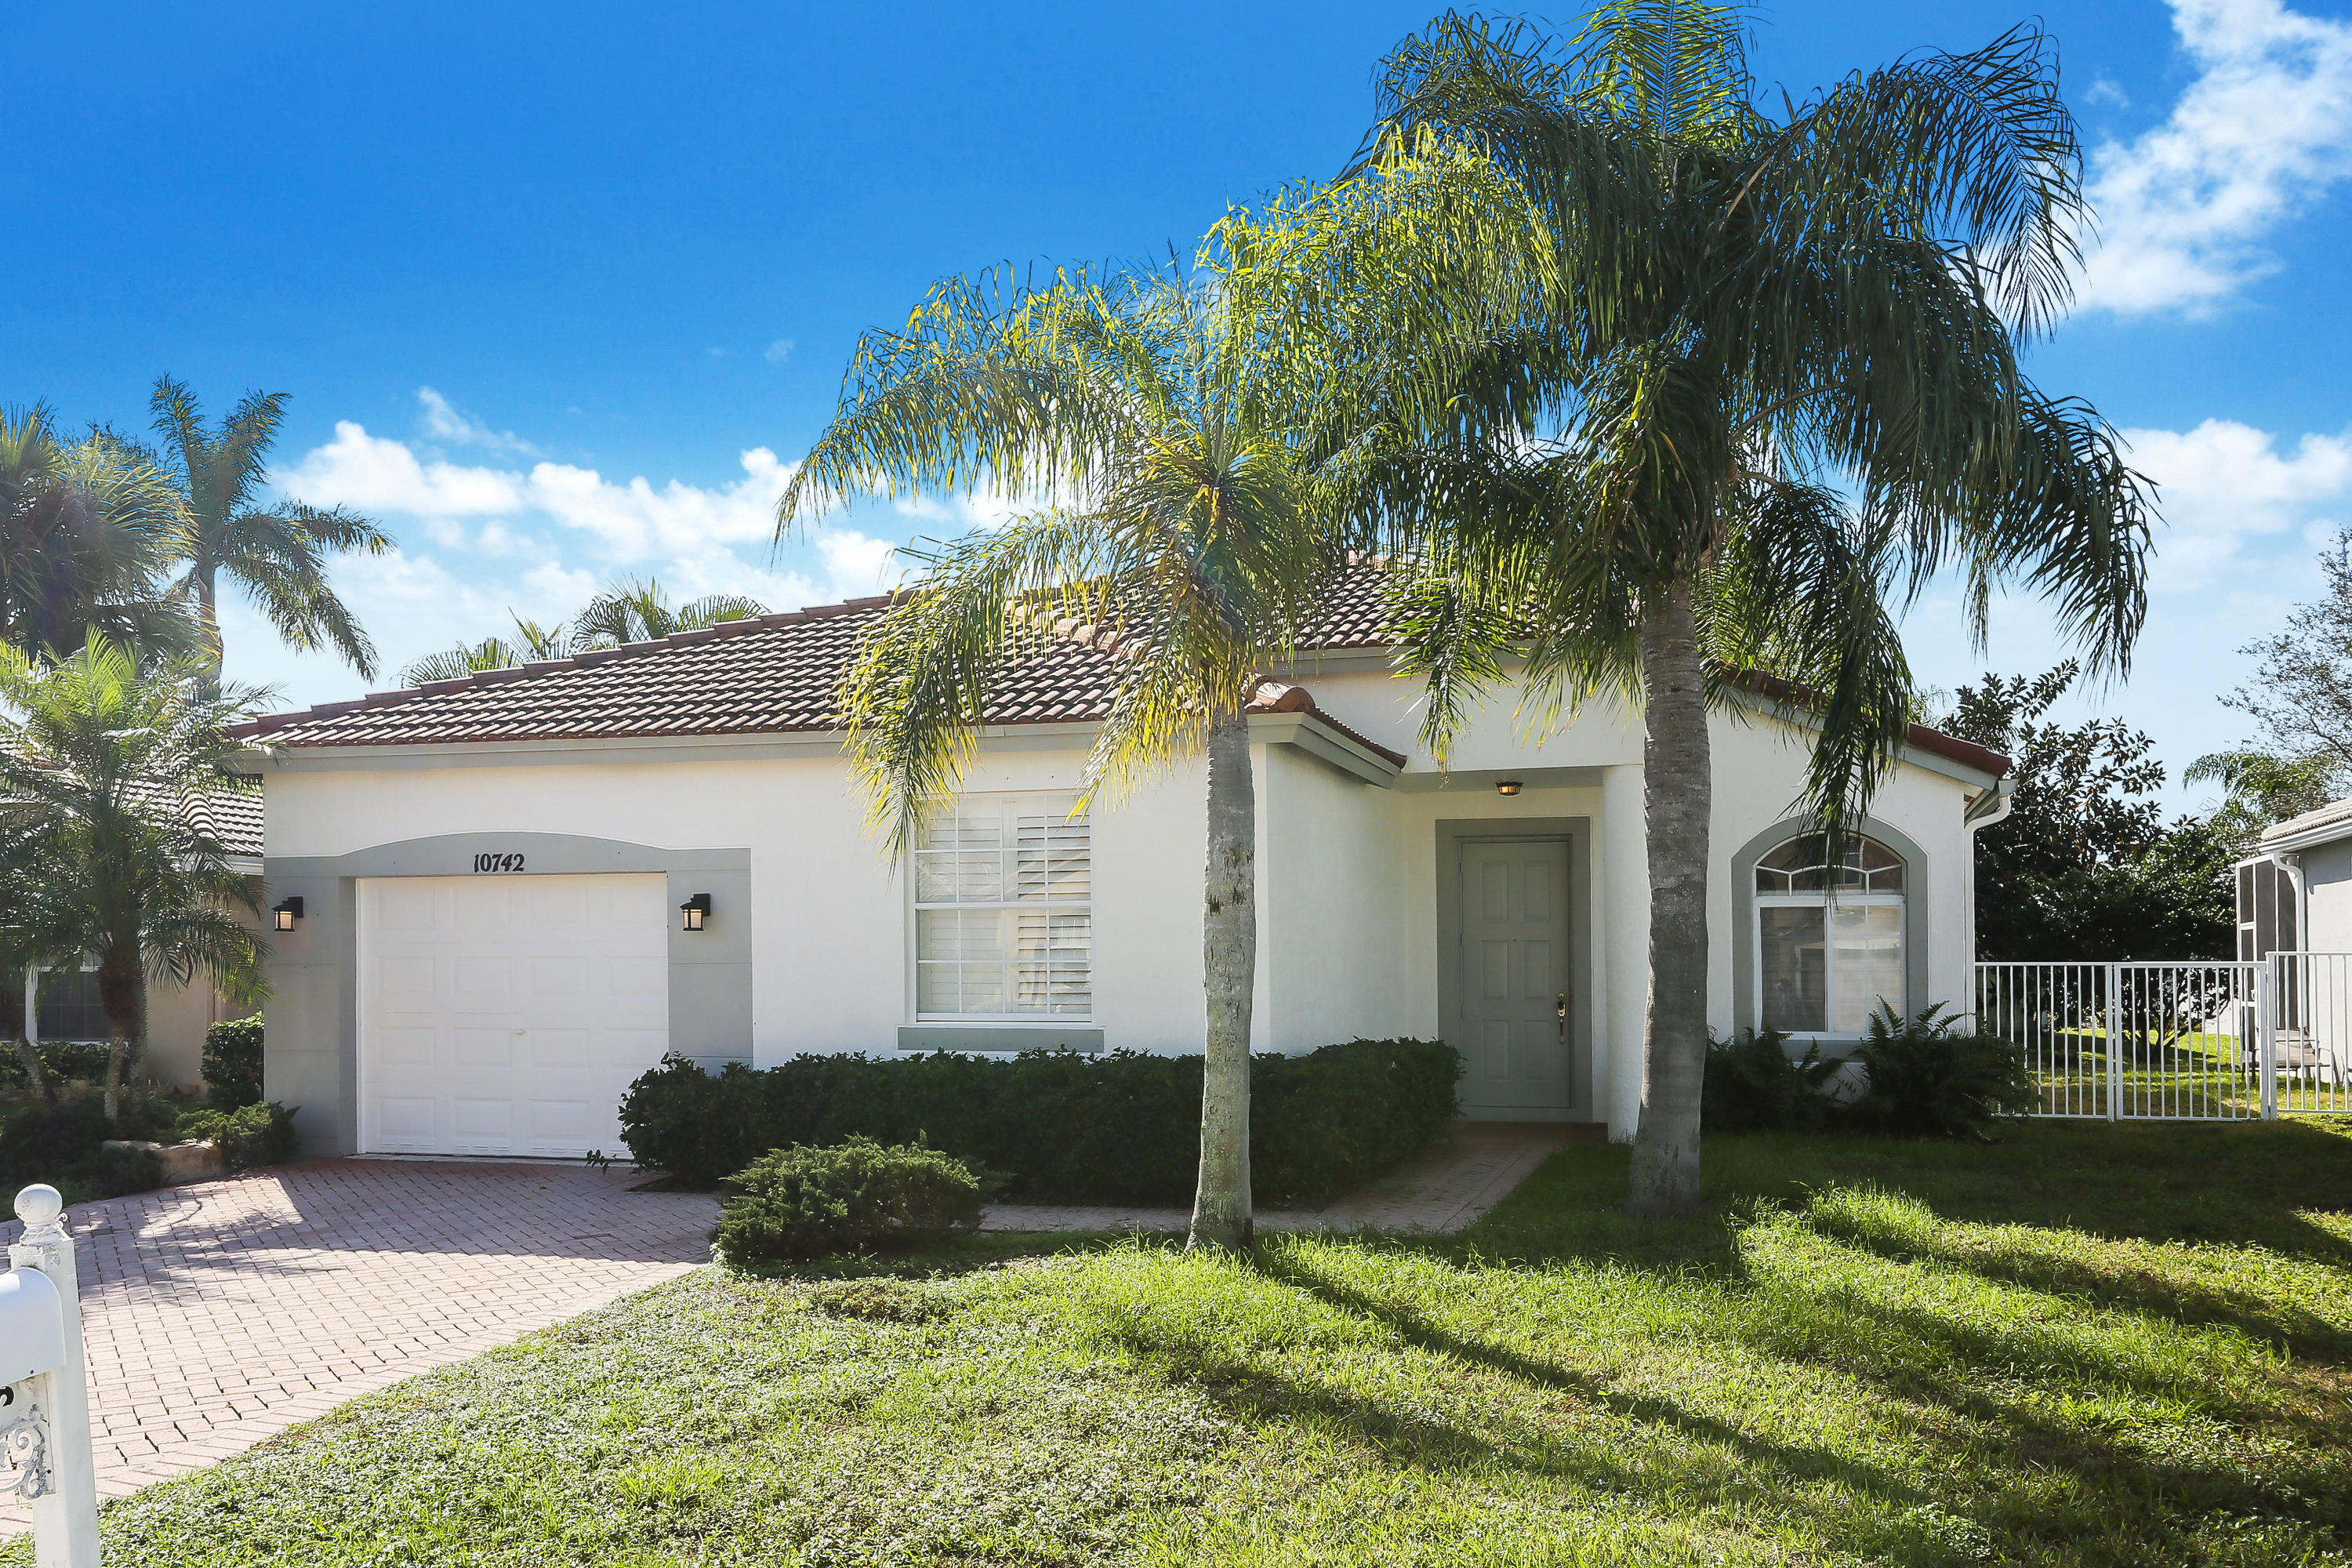 Home for sale in Wellingtons Edge Wellington Florida